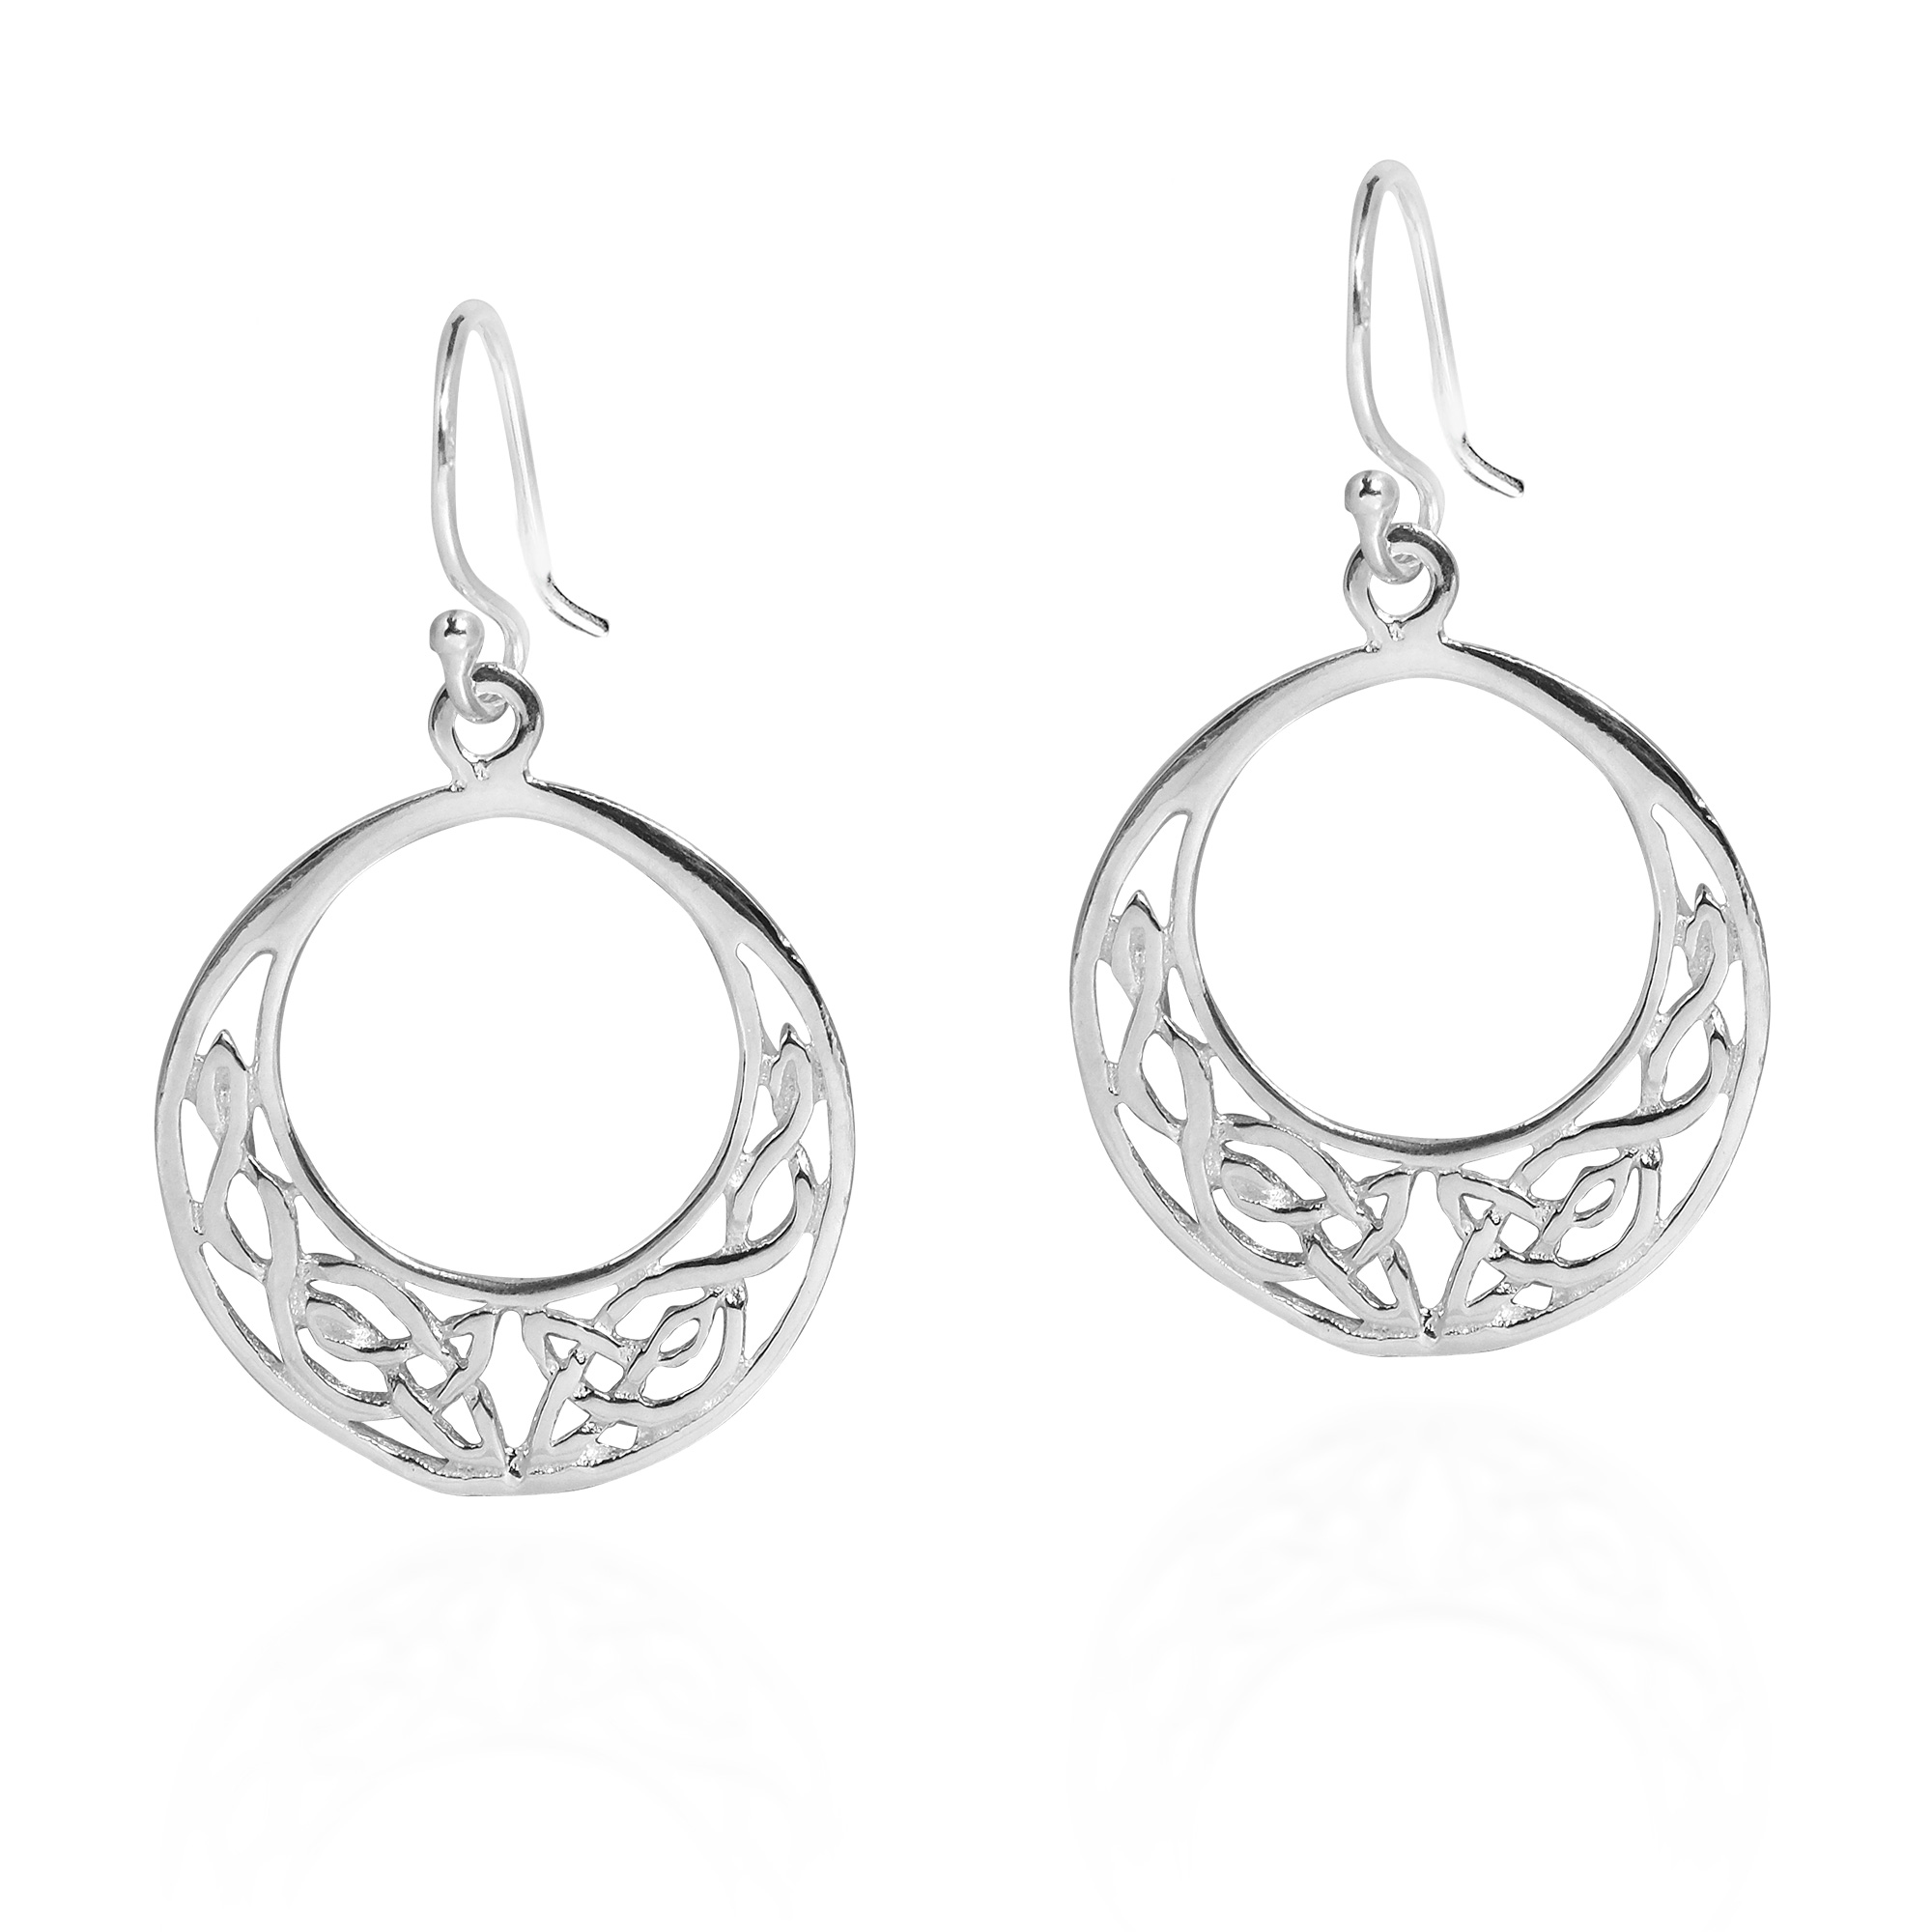 Katsaya Designed This Timeless Round Shape Sterling Silver Earrings From Thailand The Feature An Endless Weave Of Symbolic Celtic Knot